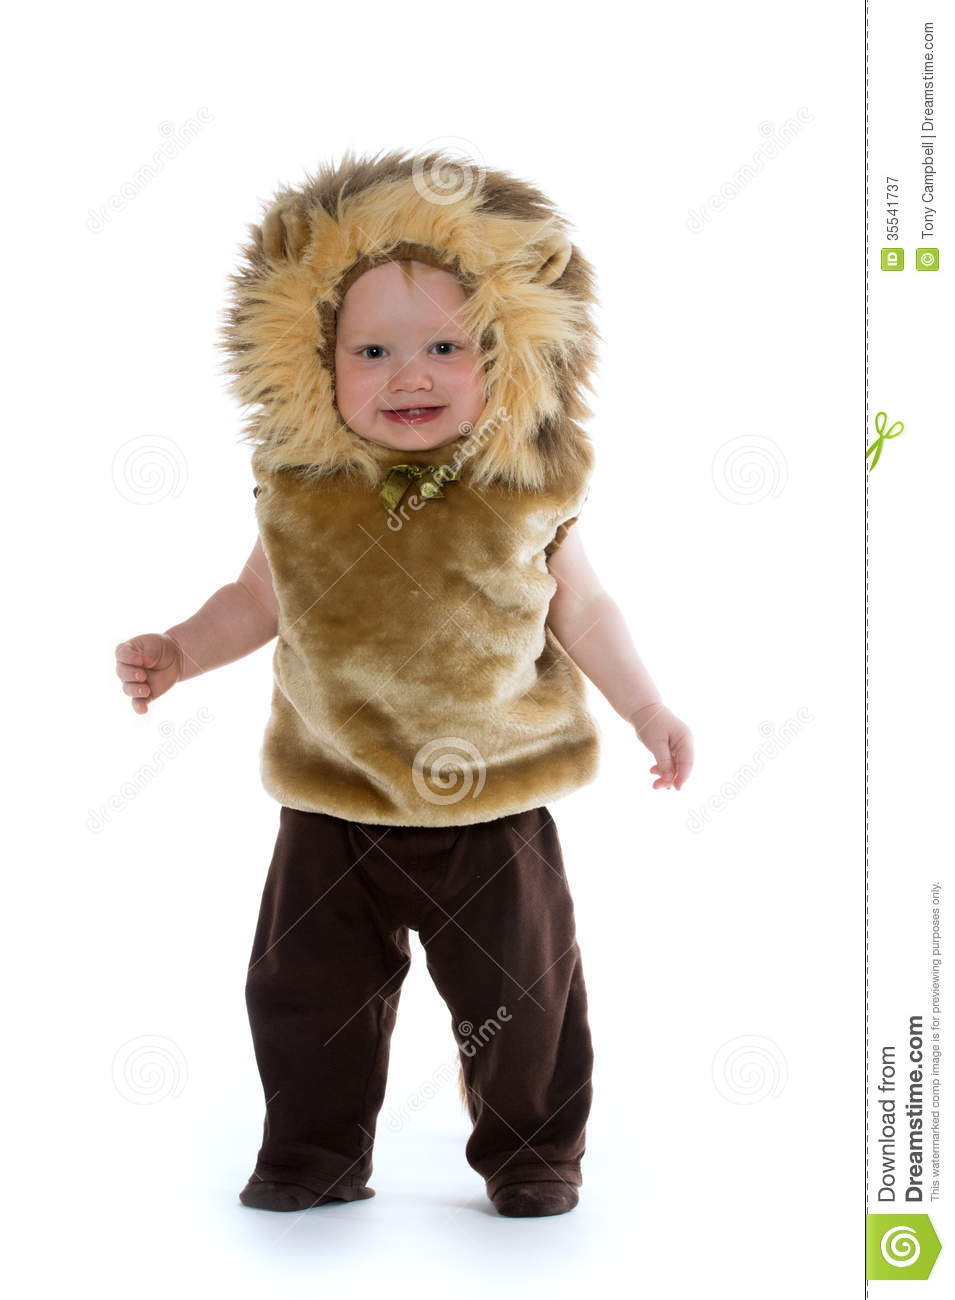 ad143a0e1 18-month-old baby boy in a lion costume for Halloween on white background